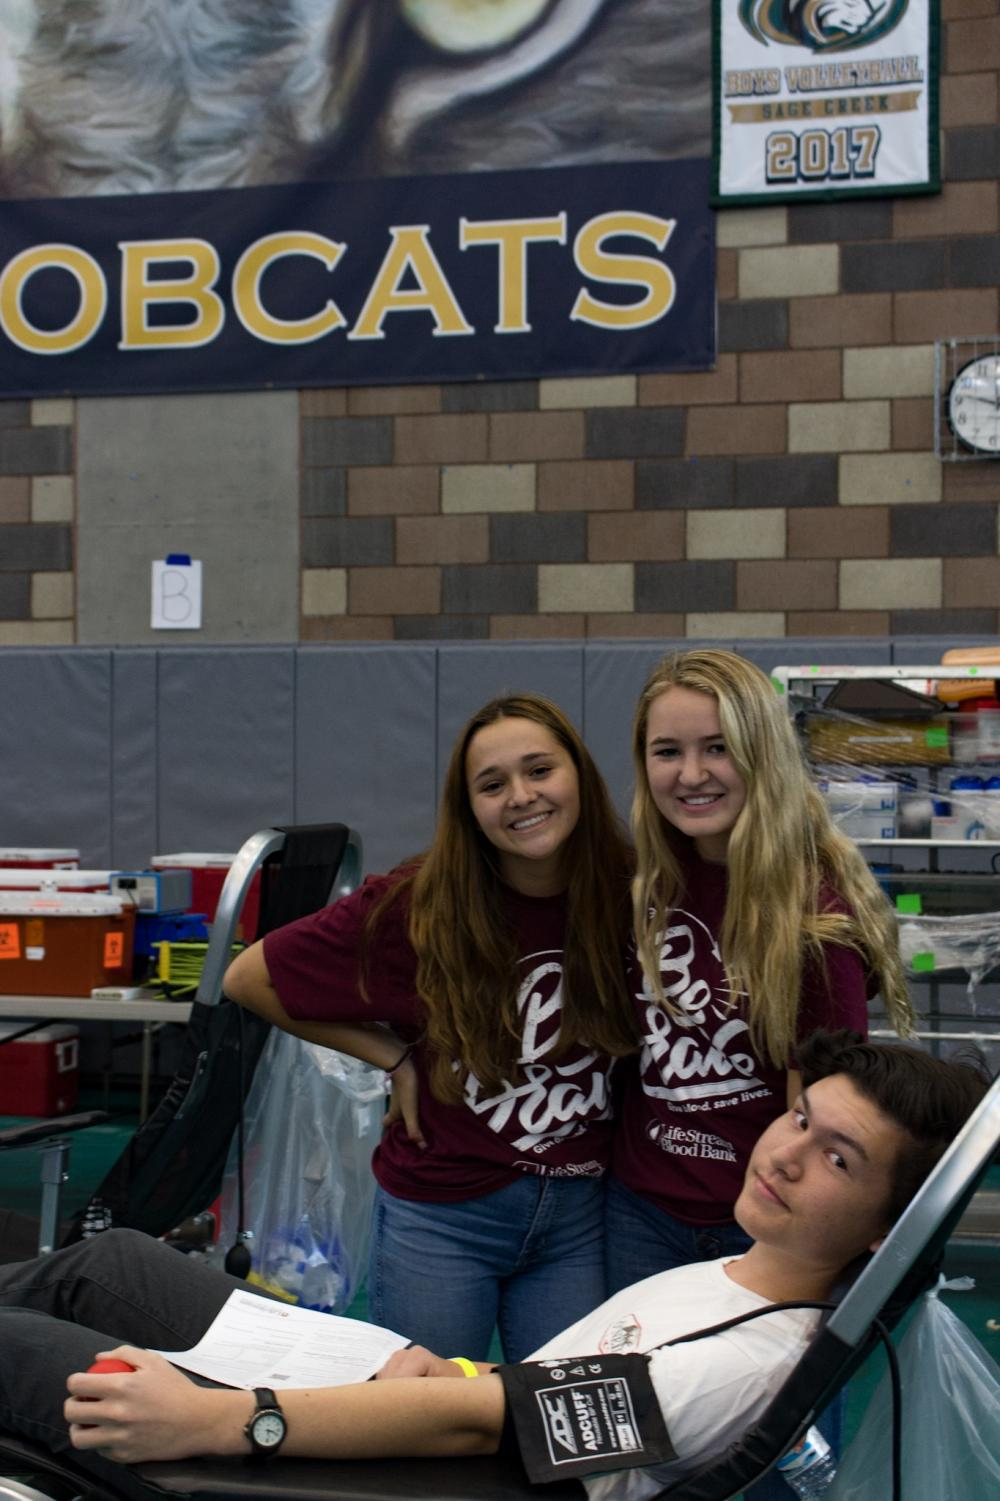 Senior+Christopher+Mou+donates+blood+in+the+Bobcat+Arena+with+the+assistance+of+two+helpers.+ASB+hosted+its+blood+drive+last+Tuesday+to+help+those+in+need+of+a+blood+donation.